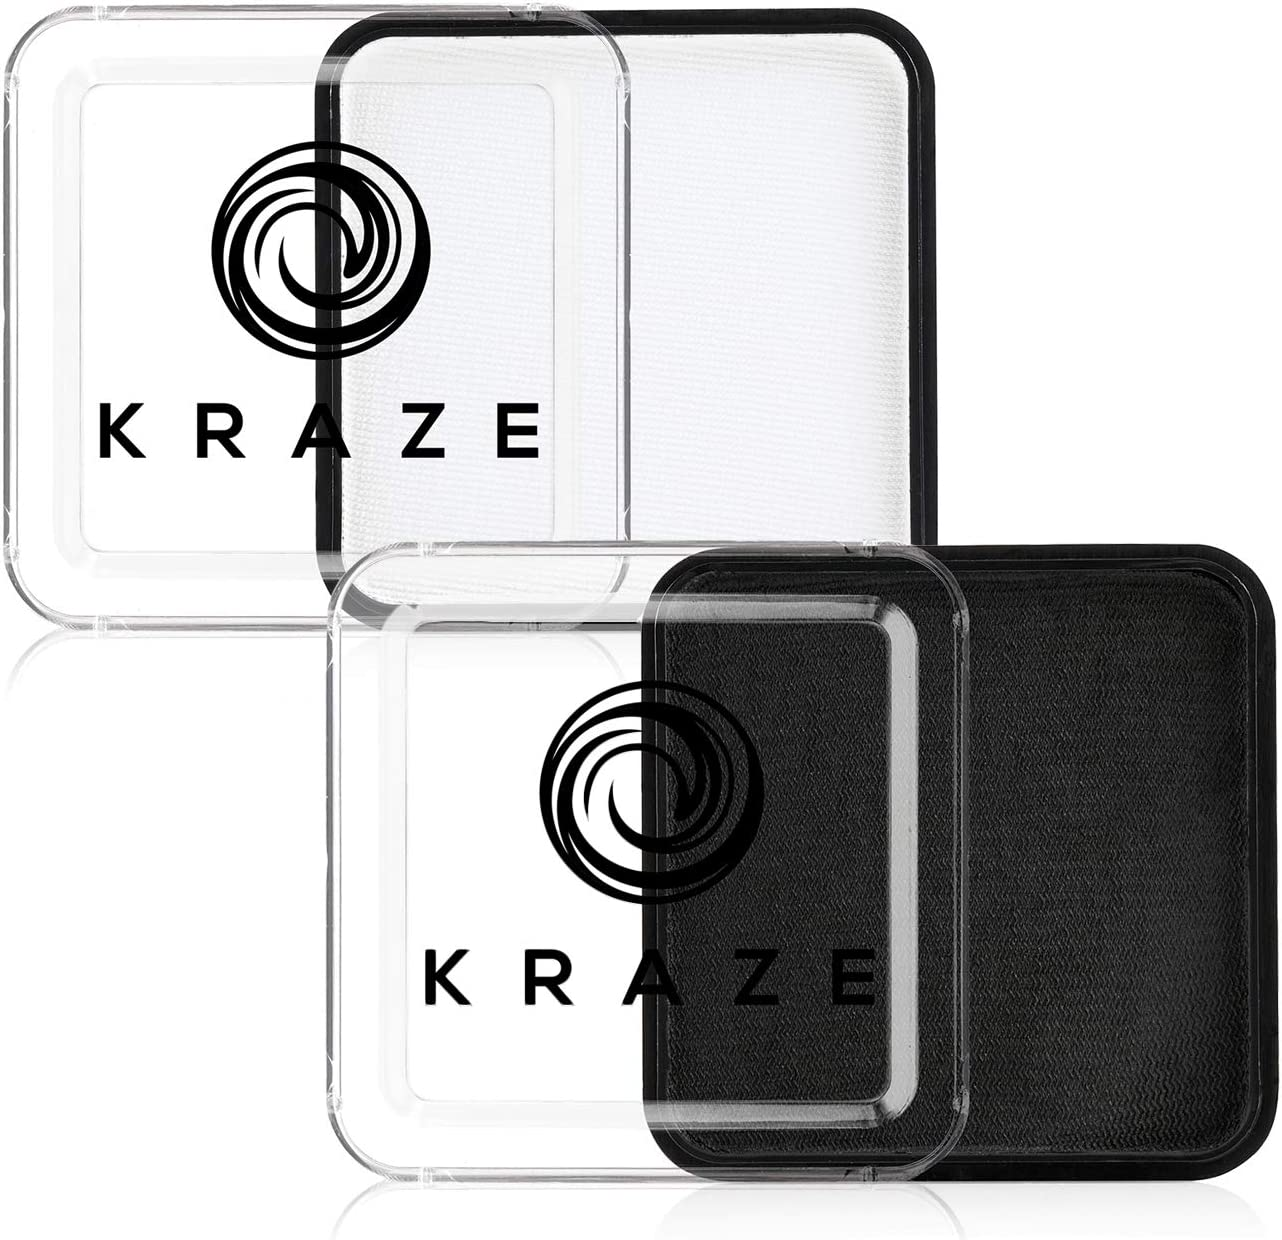 Kraze FX Black and White Face Hypoallergenic - Paint Kansas City Mall Super sale period limited Non-To Set